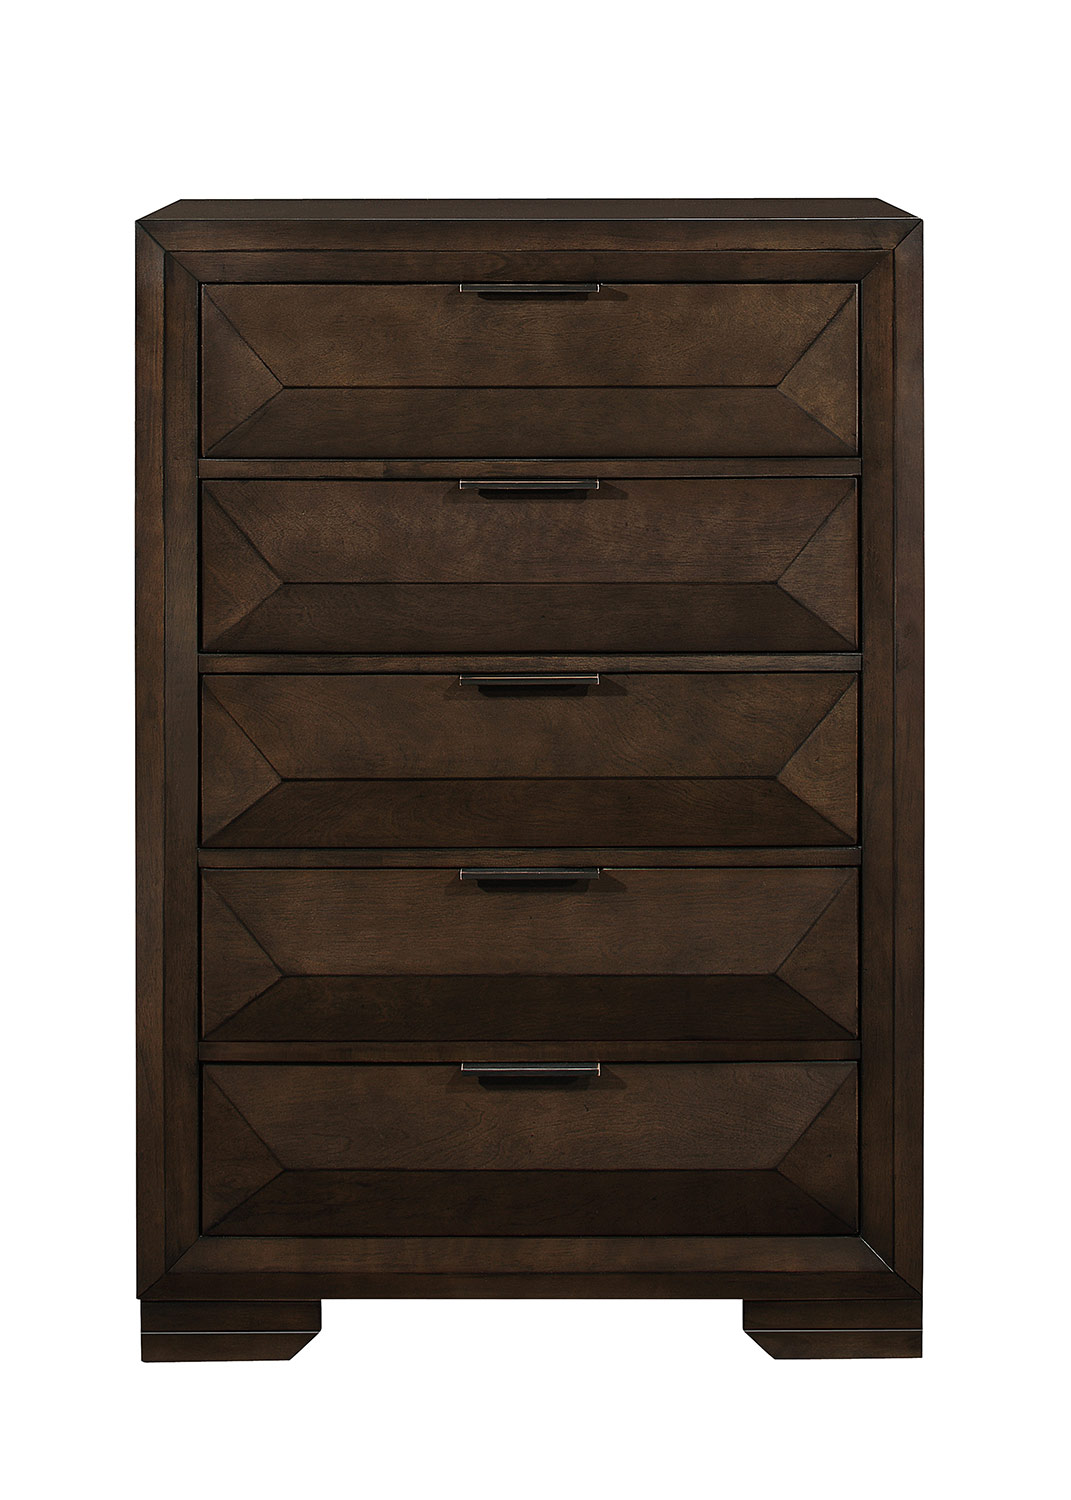 Homelegance Chesky Chest - Warm Espresso